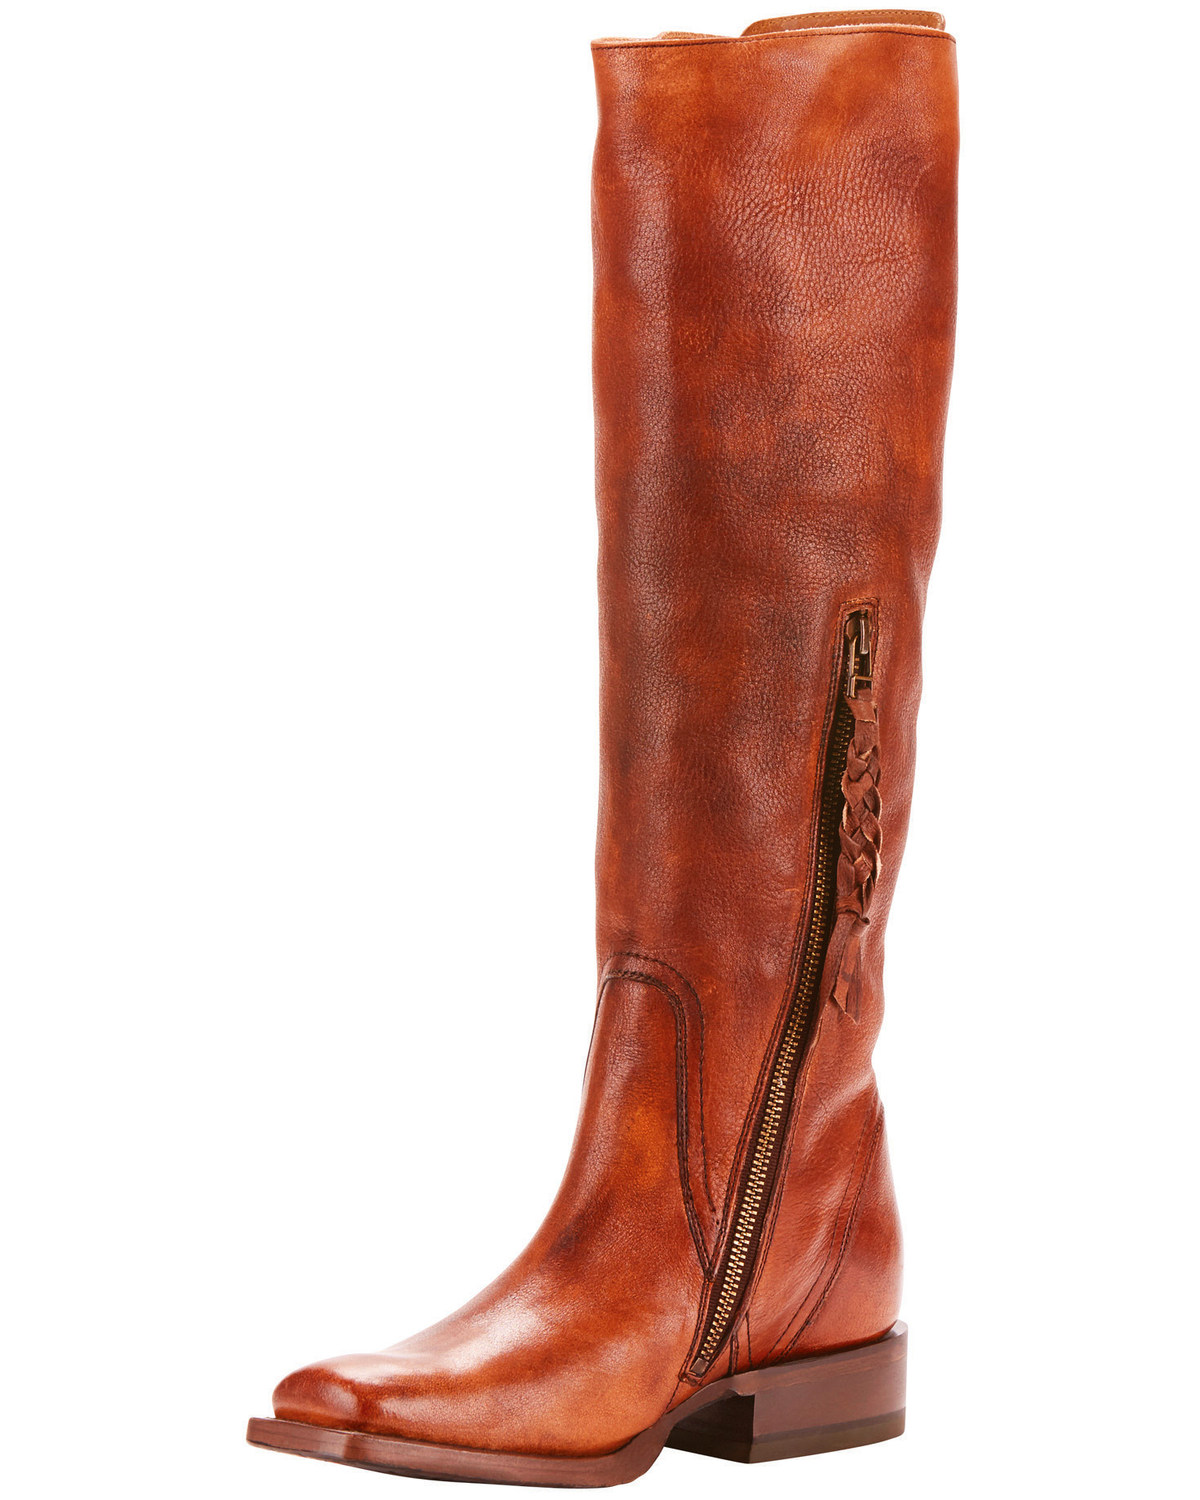 af6b848c64b Ariat Women's Sawyer Lace Up Western Fashion Boots - Square Toe